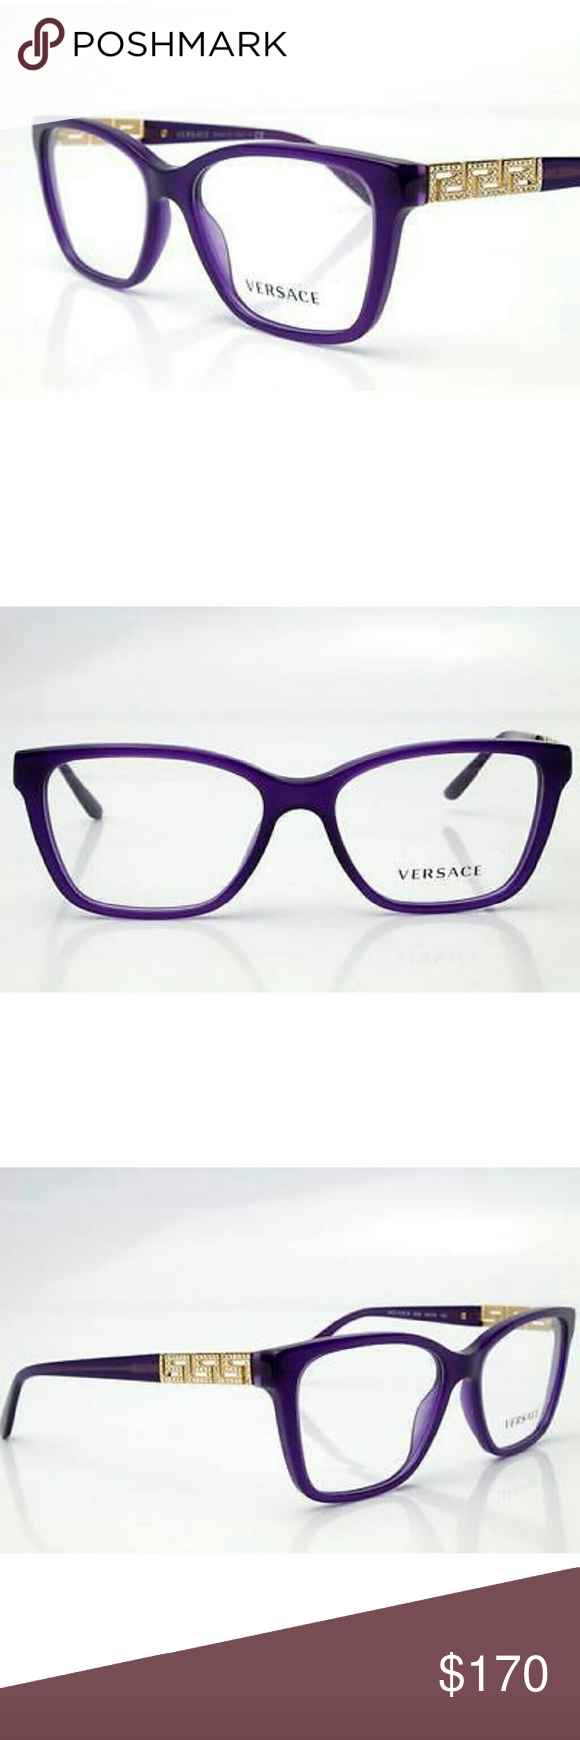 8e653f67d6c Versace Eyeglasses New and authentic Versace Eyeglasses Purple and gold  frame 52mm Original case included Versace Accessories Glasses